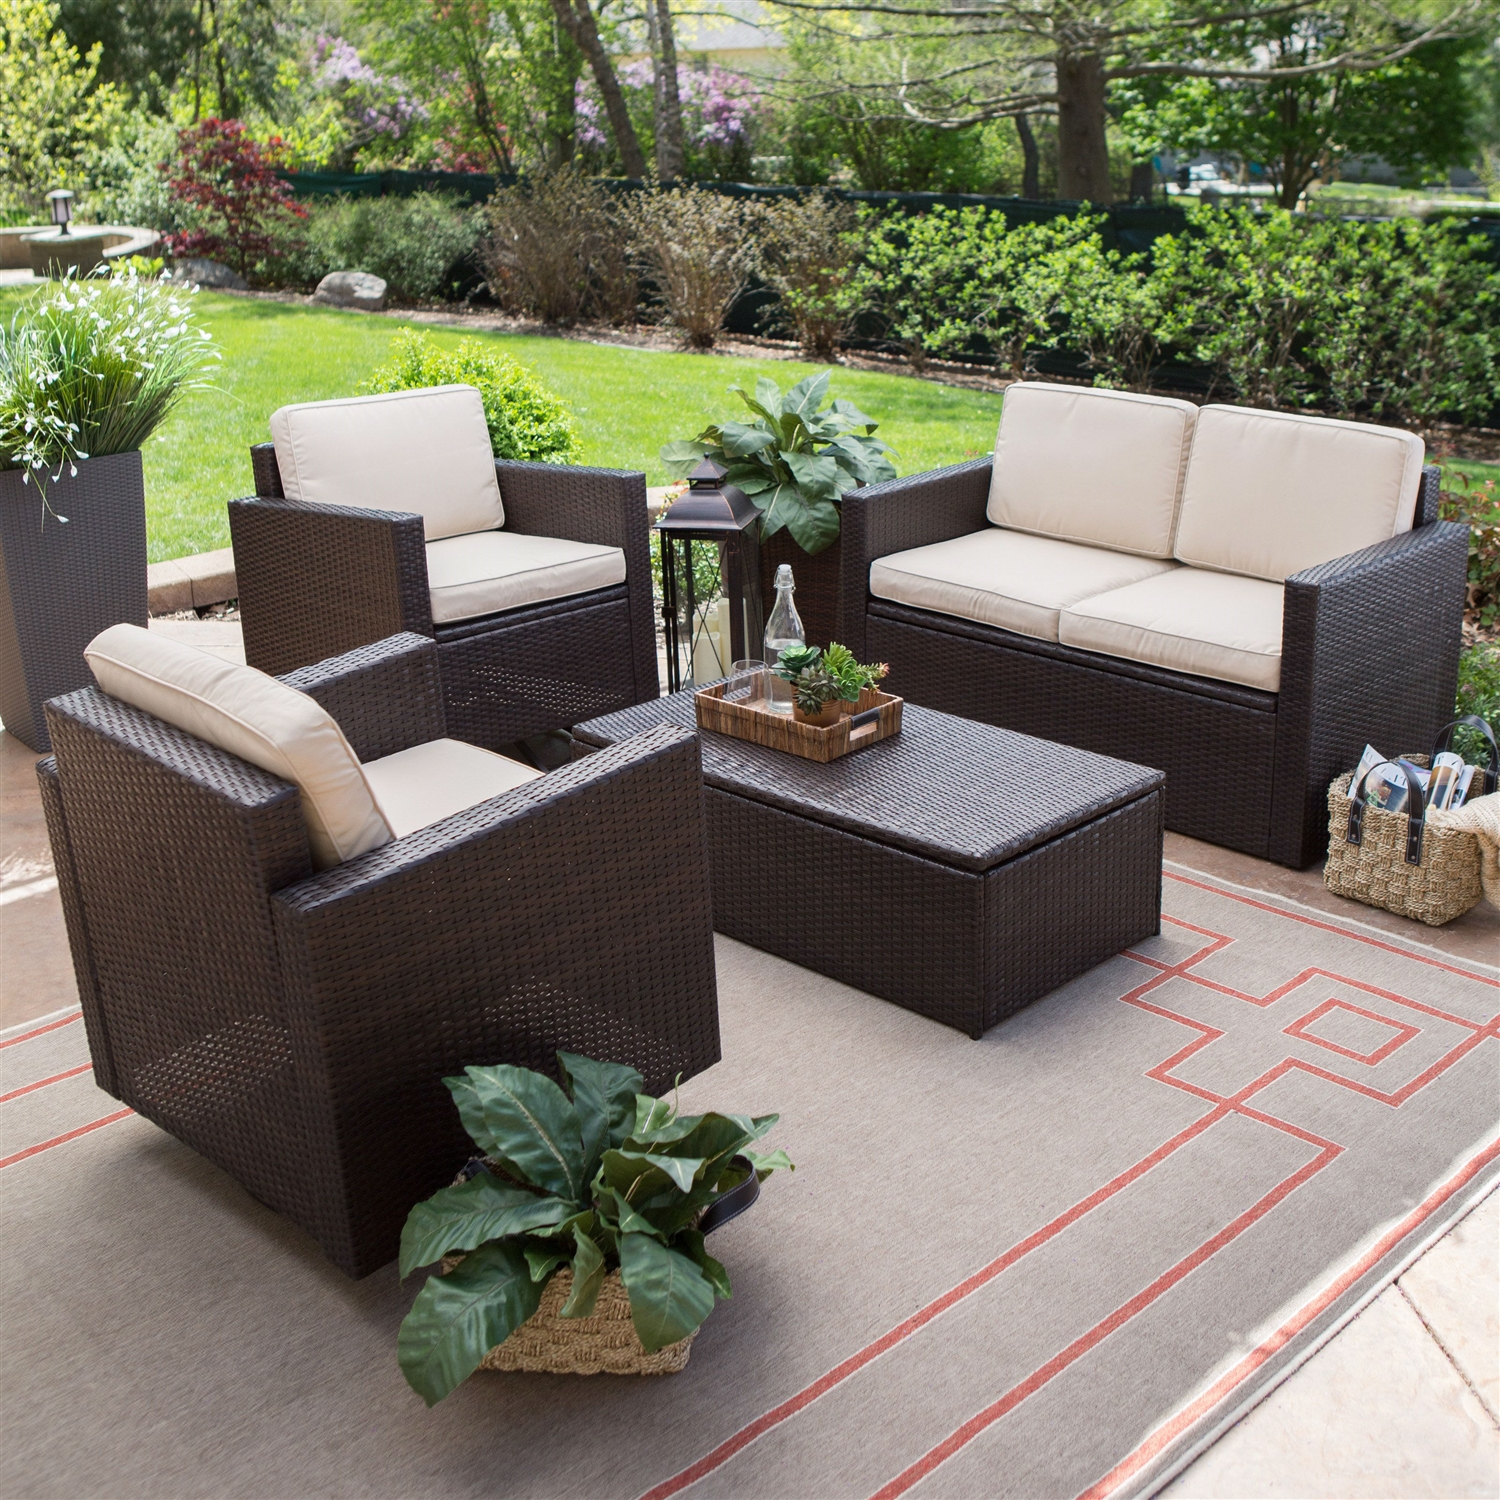 Etonnant Outdoor Wicker Resin 4 Piece Patio Furniture Dinning Set With 2 Chairs  Loveseat And Coffee Table | Fastfurnishings.com